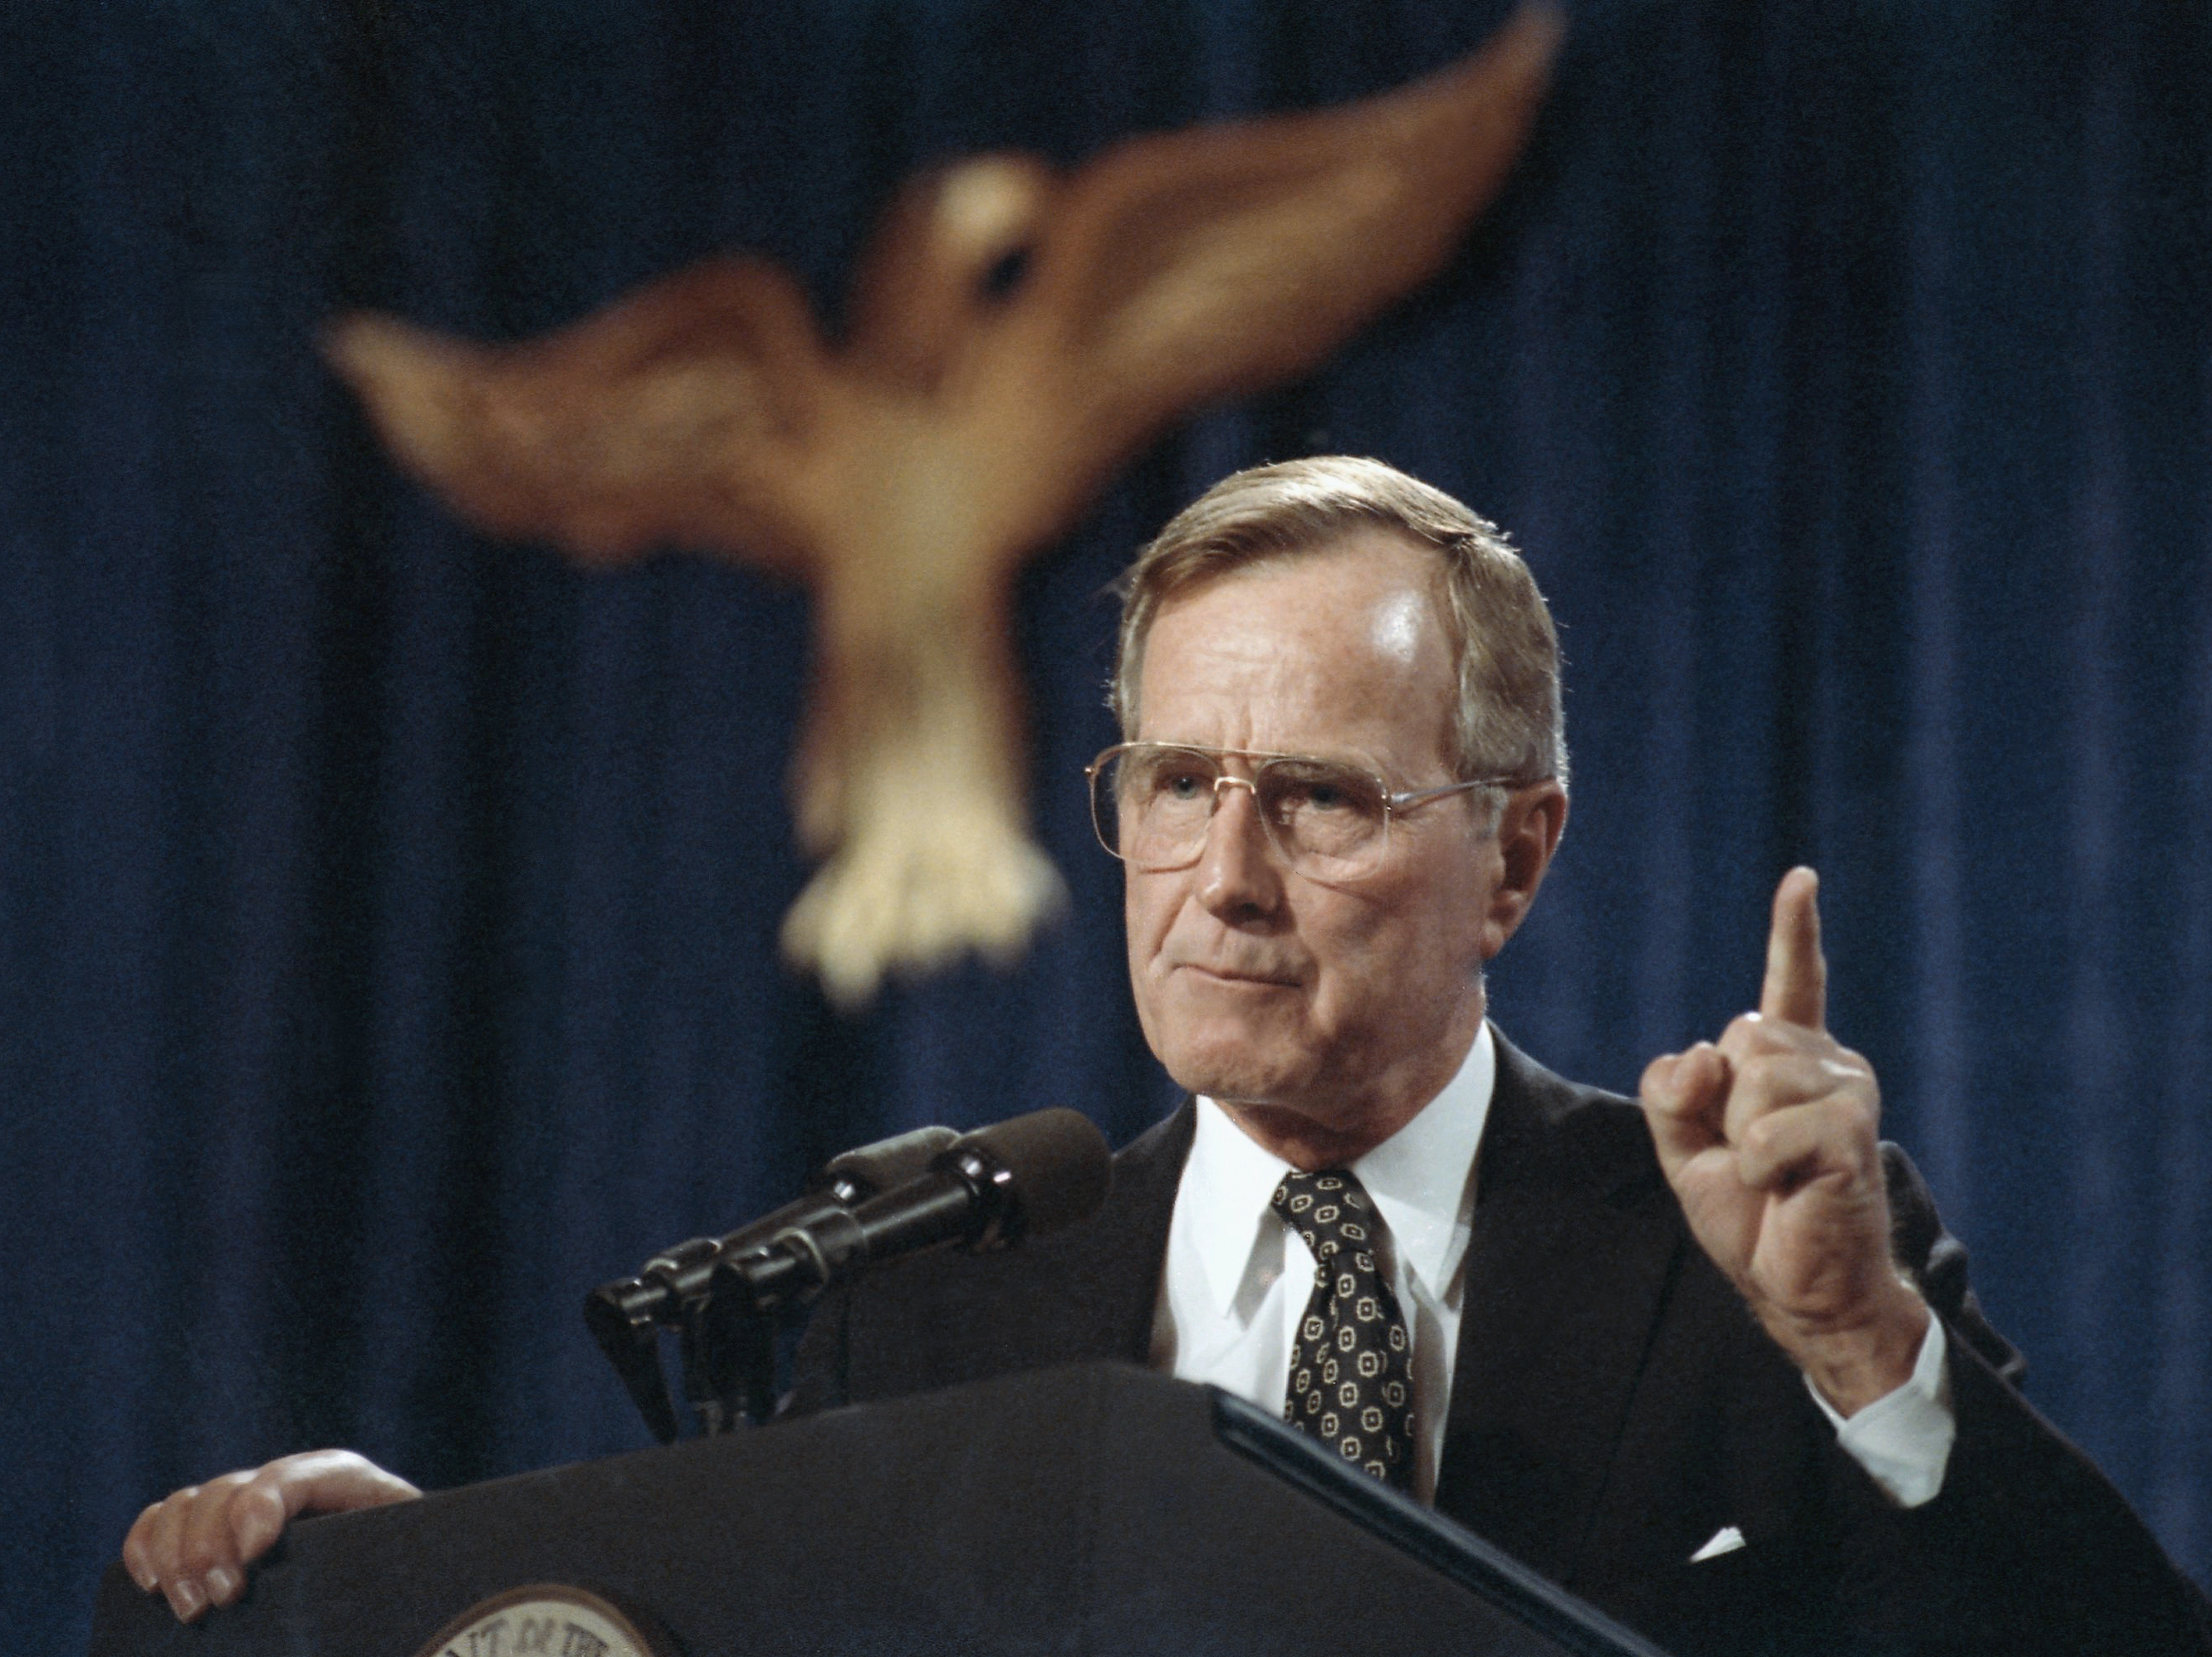 George H.W. Bush, the 41st president of the United States, speaks at a fundraiser in Dallas in 1991.